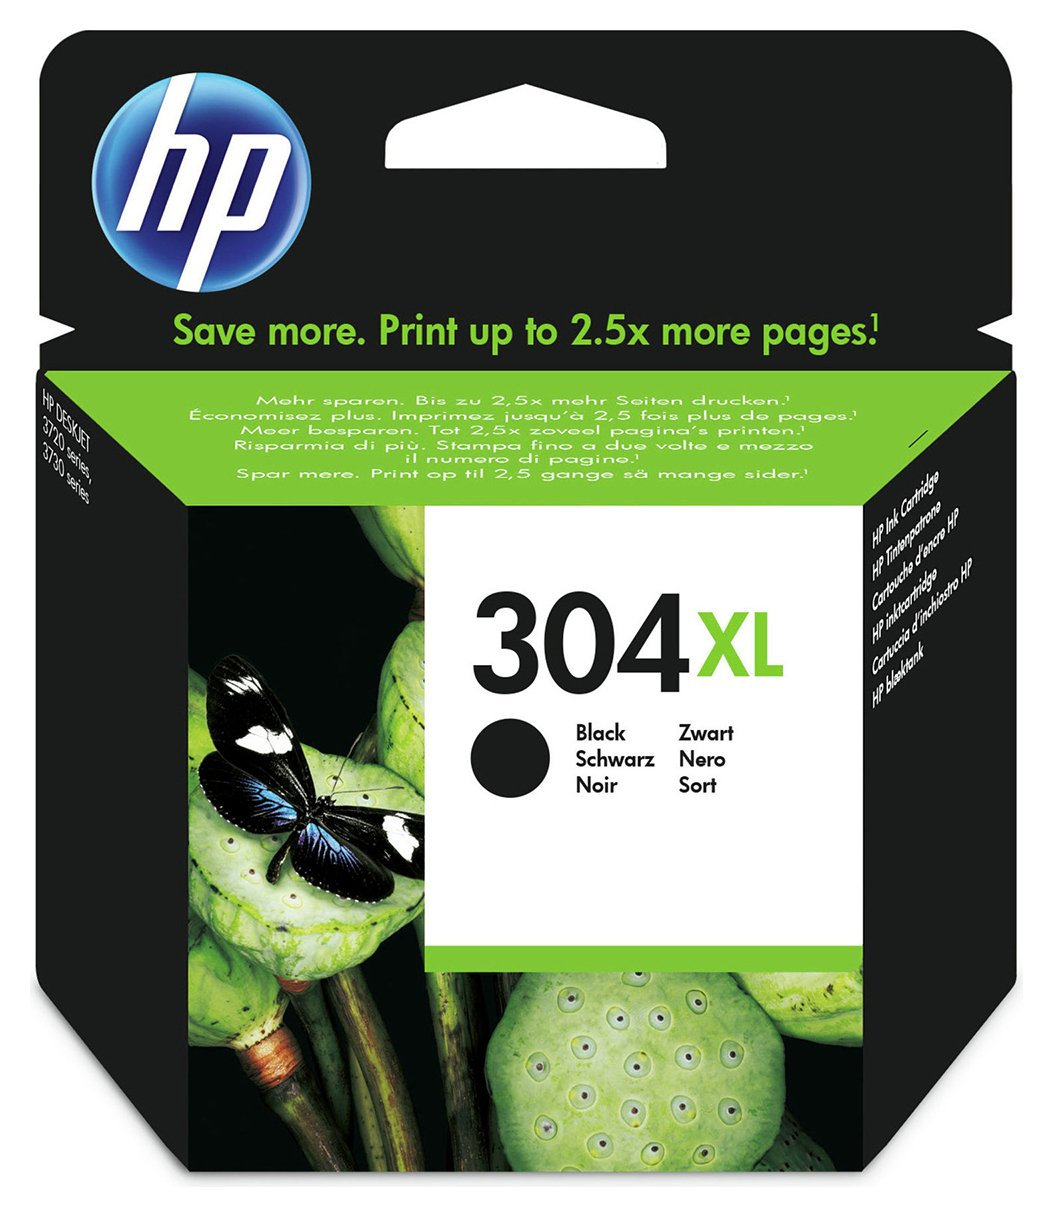 HP 304XL Black Ink Cartridge from HP